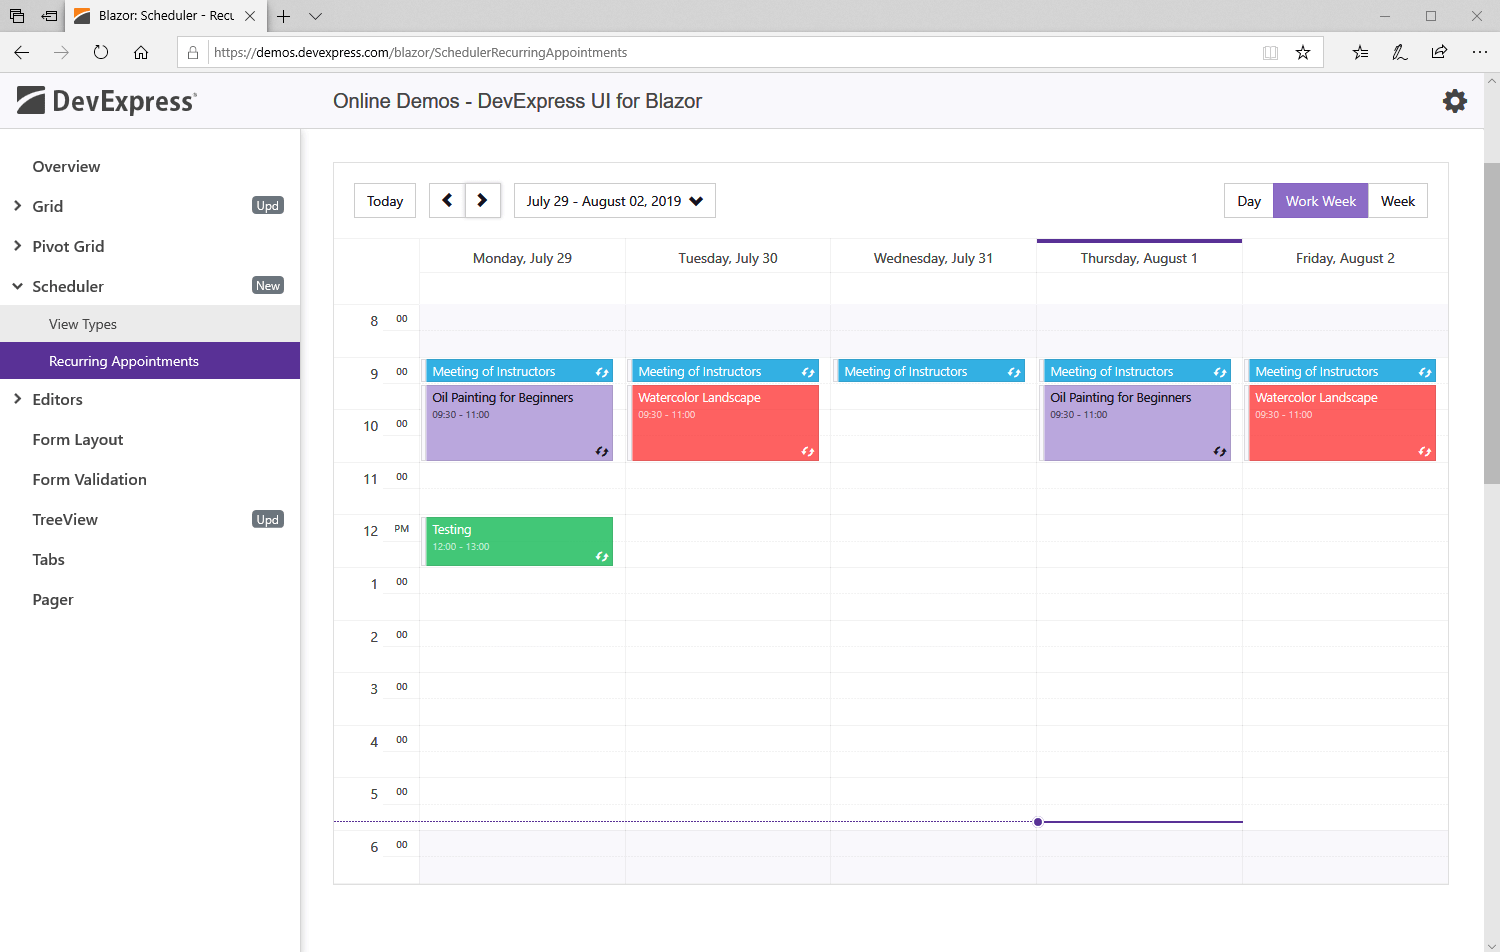 Blazor Scheduler UI Component - Recurring Appointments, DevExpress